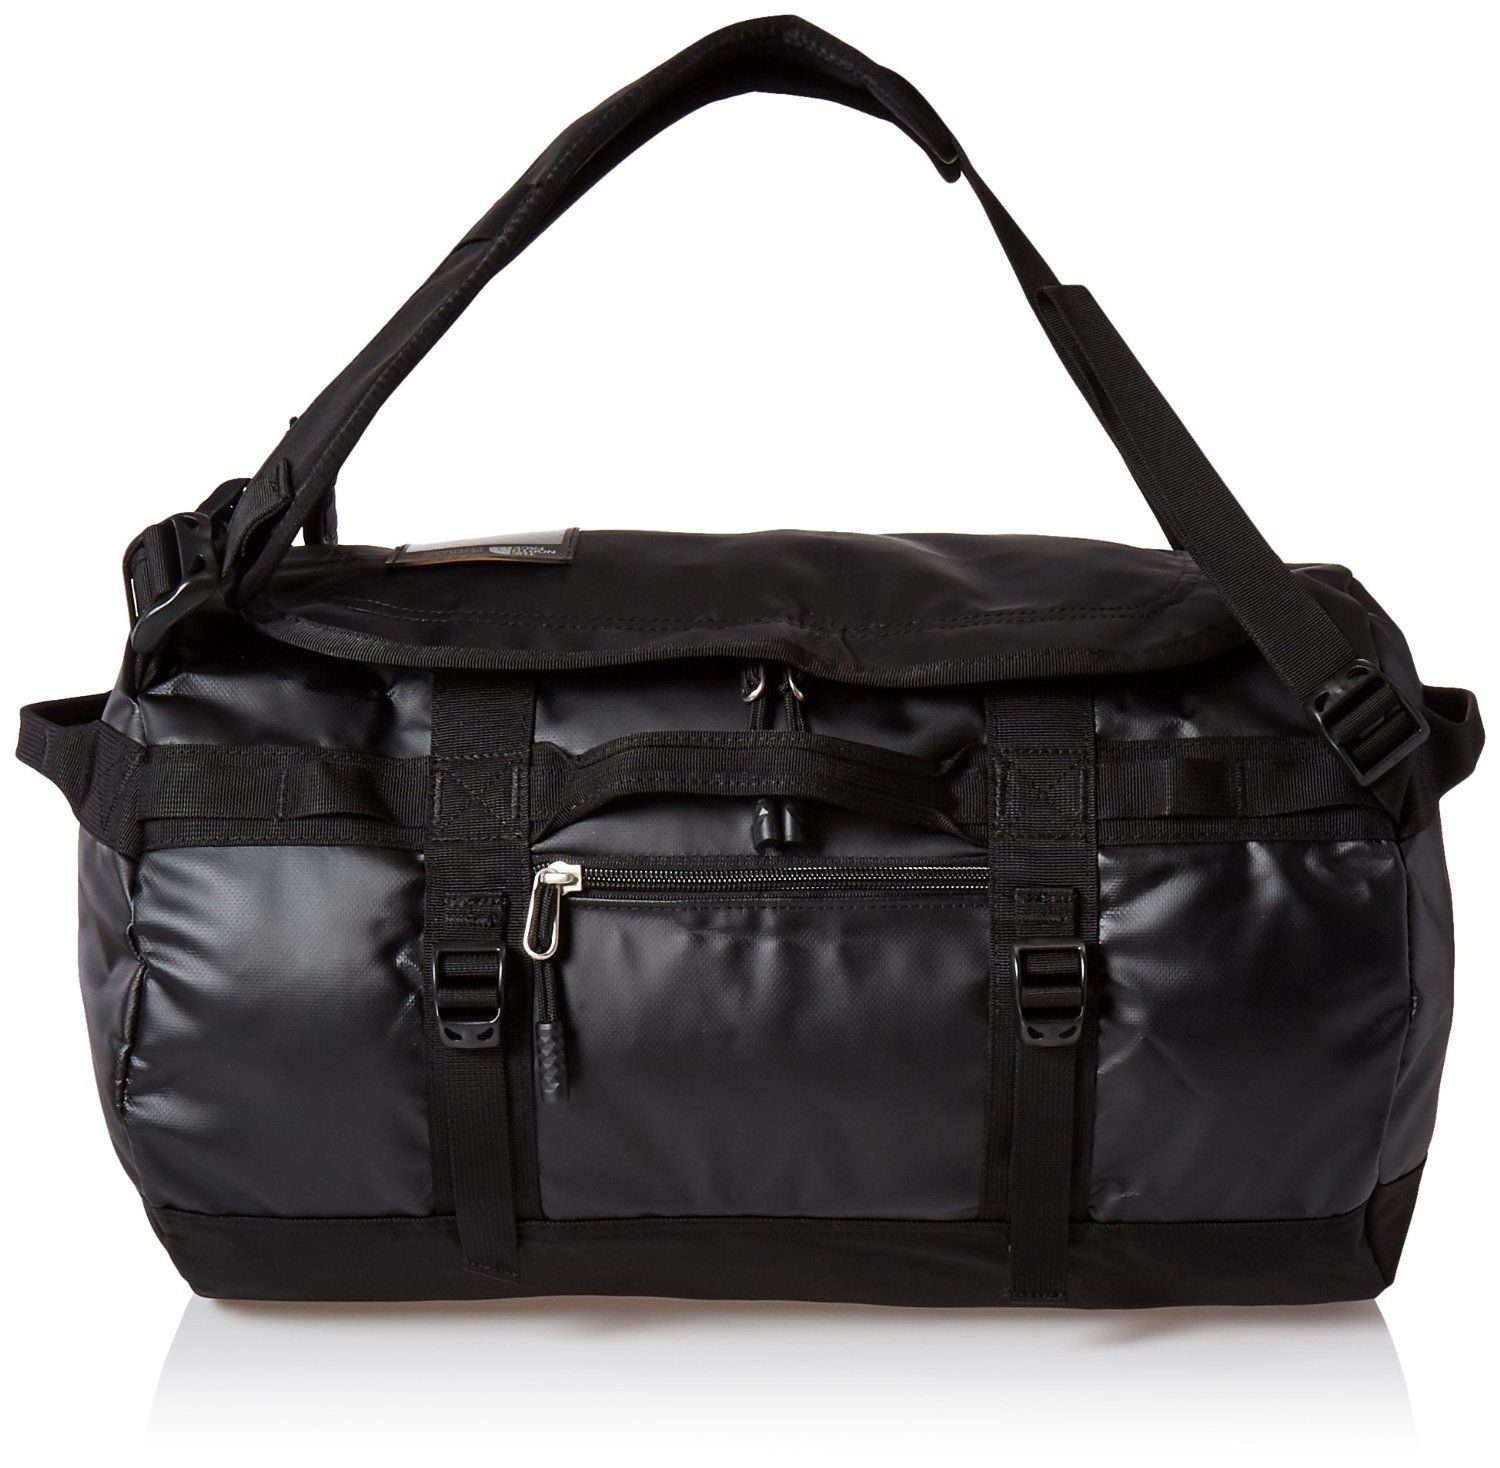 111abe54 Amazon.com : The North Face Base Camp Duffel - Small TNF Black 3 : Sports &  Outdoors